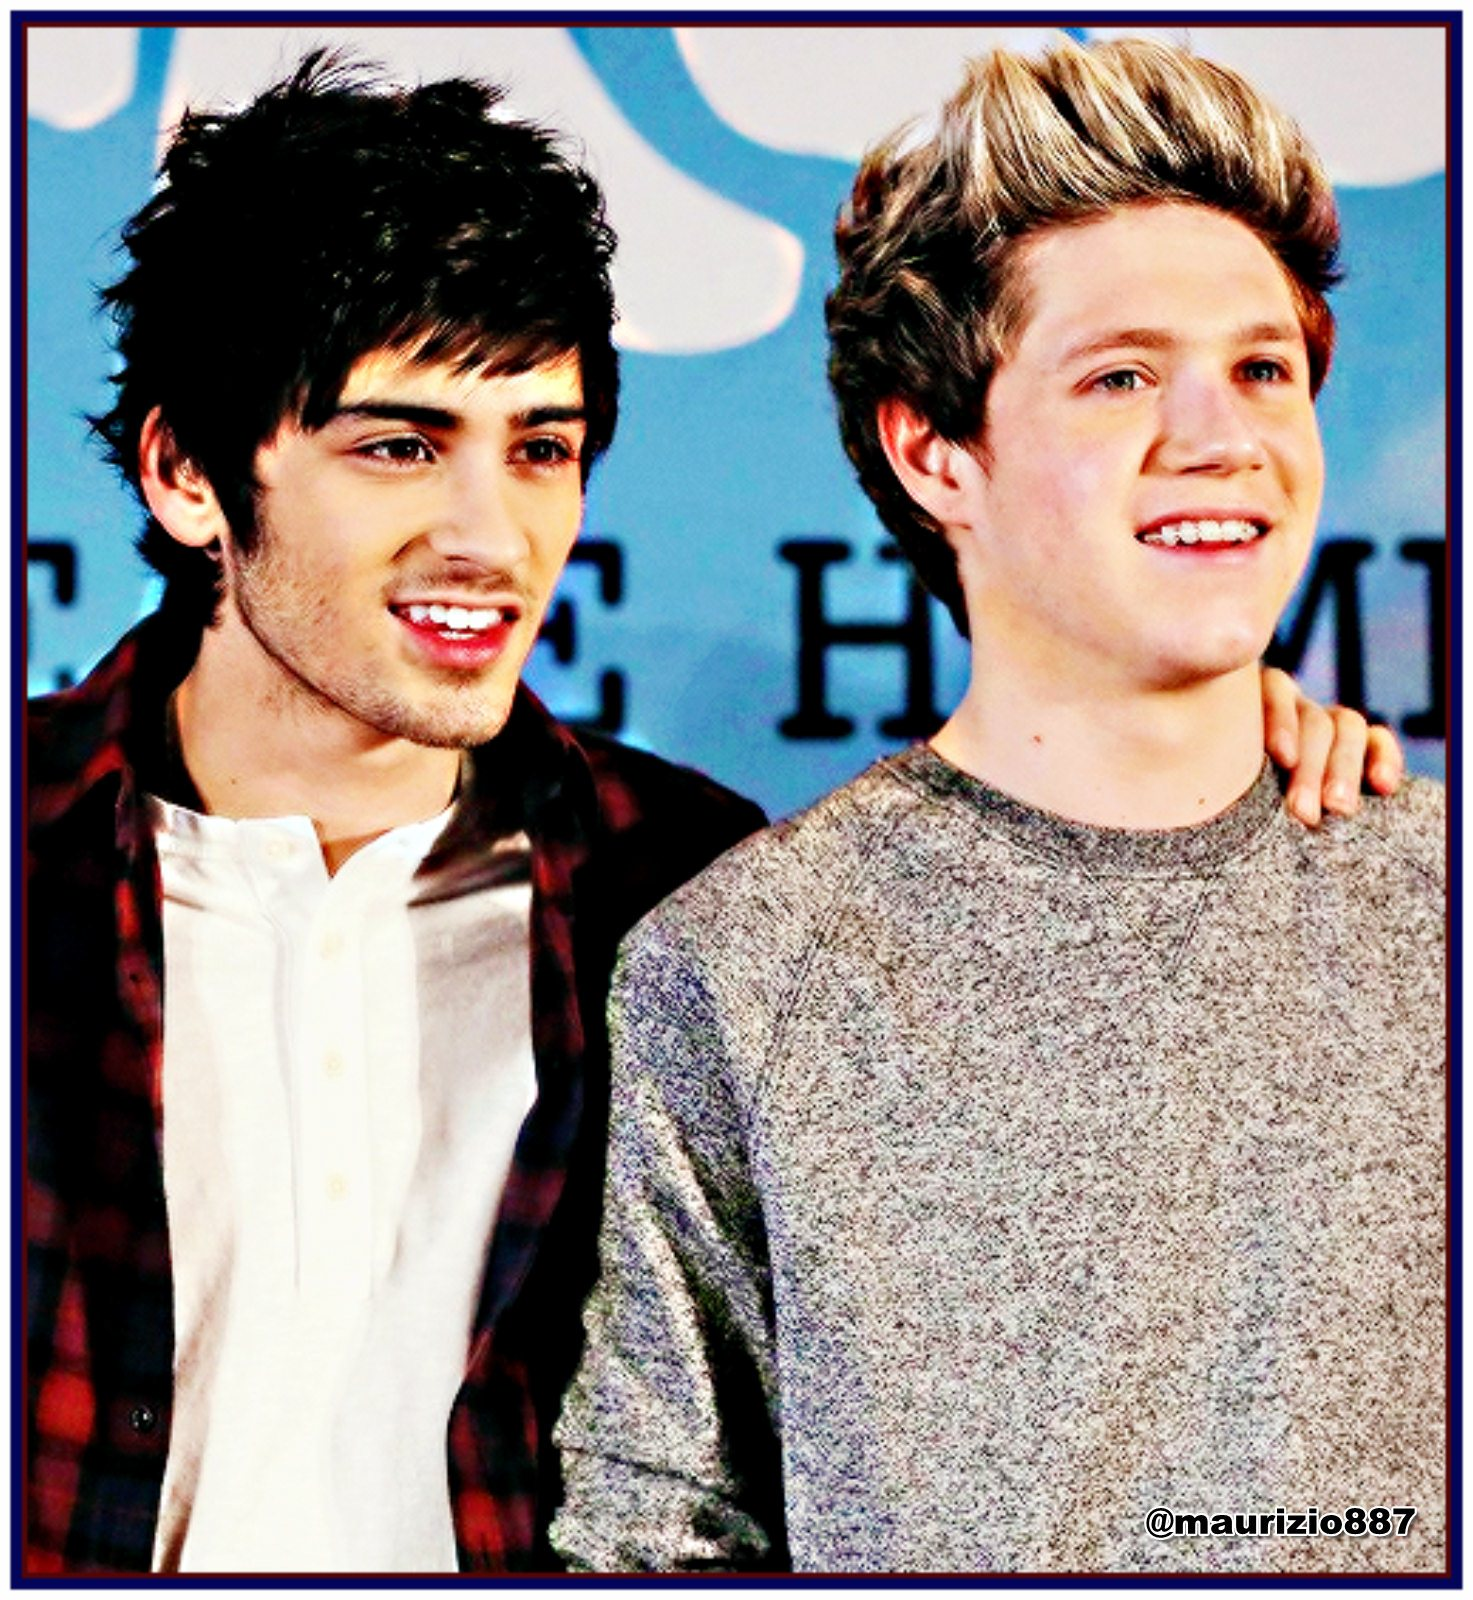 Zayn & Niall 2013 - One Direction Photo (33340996) - Fanpop